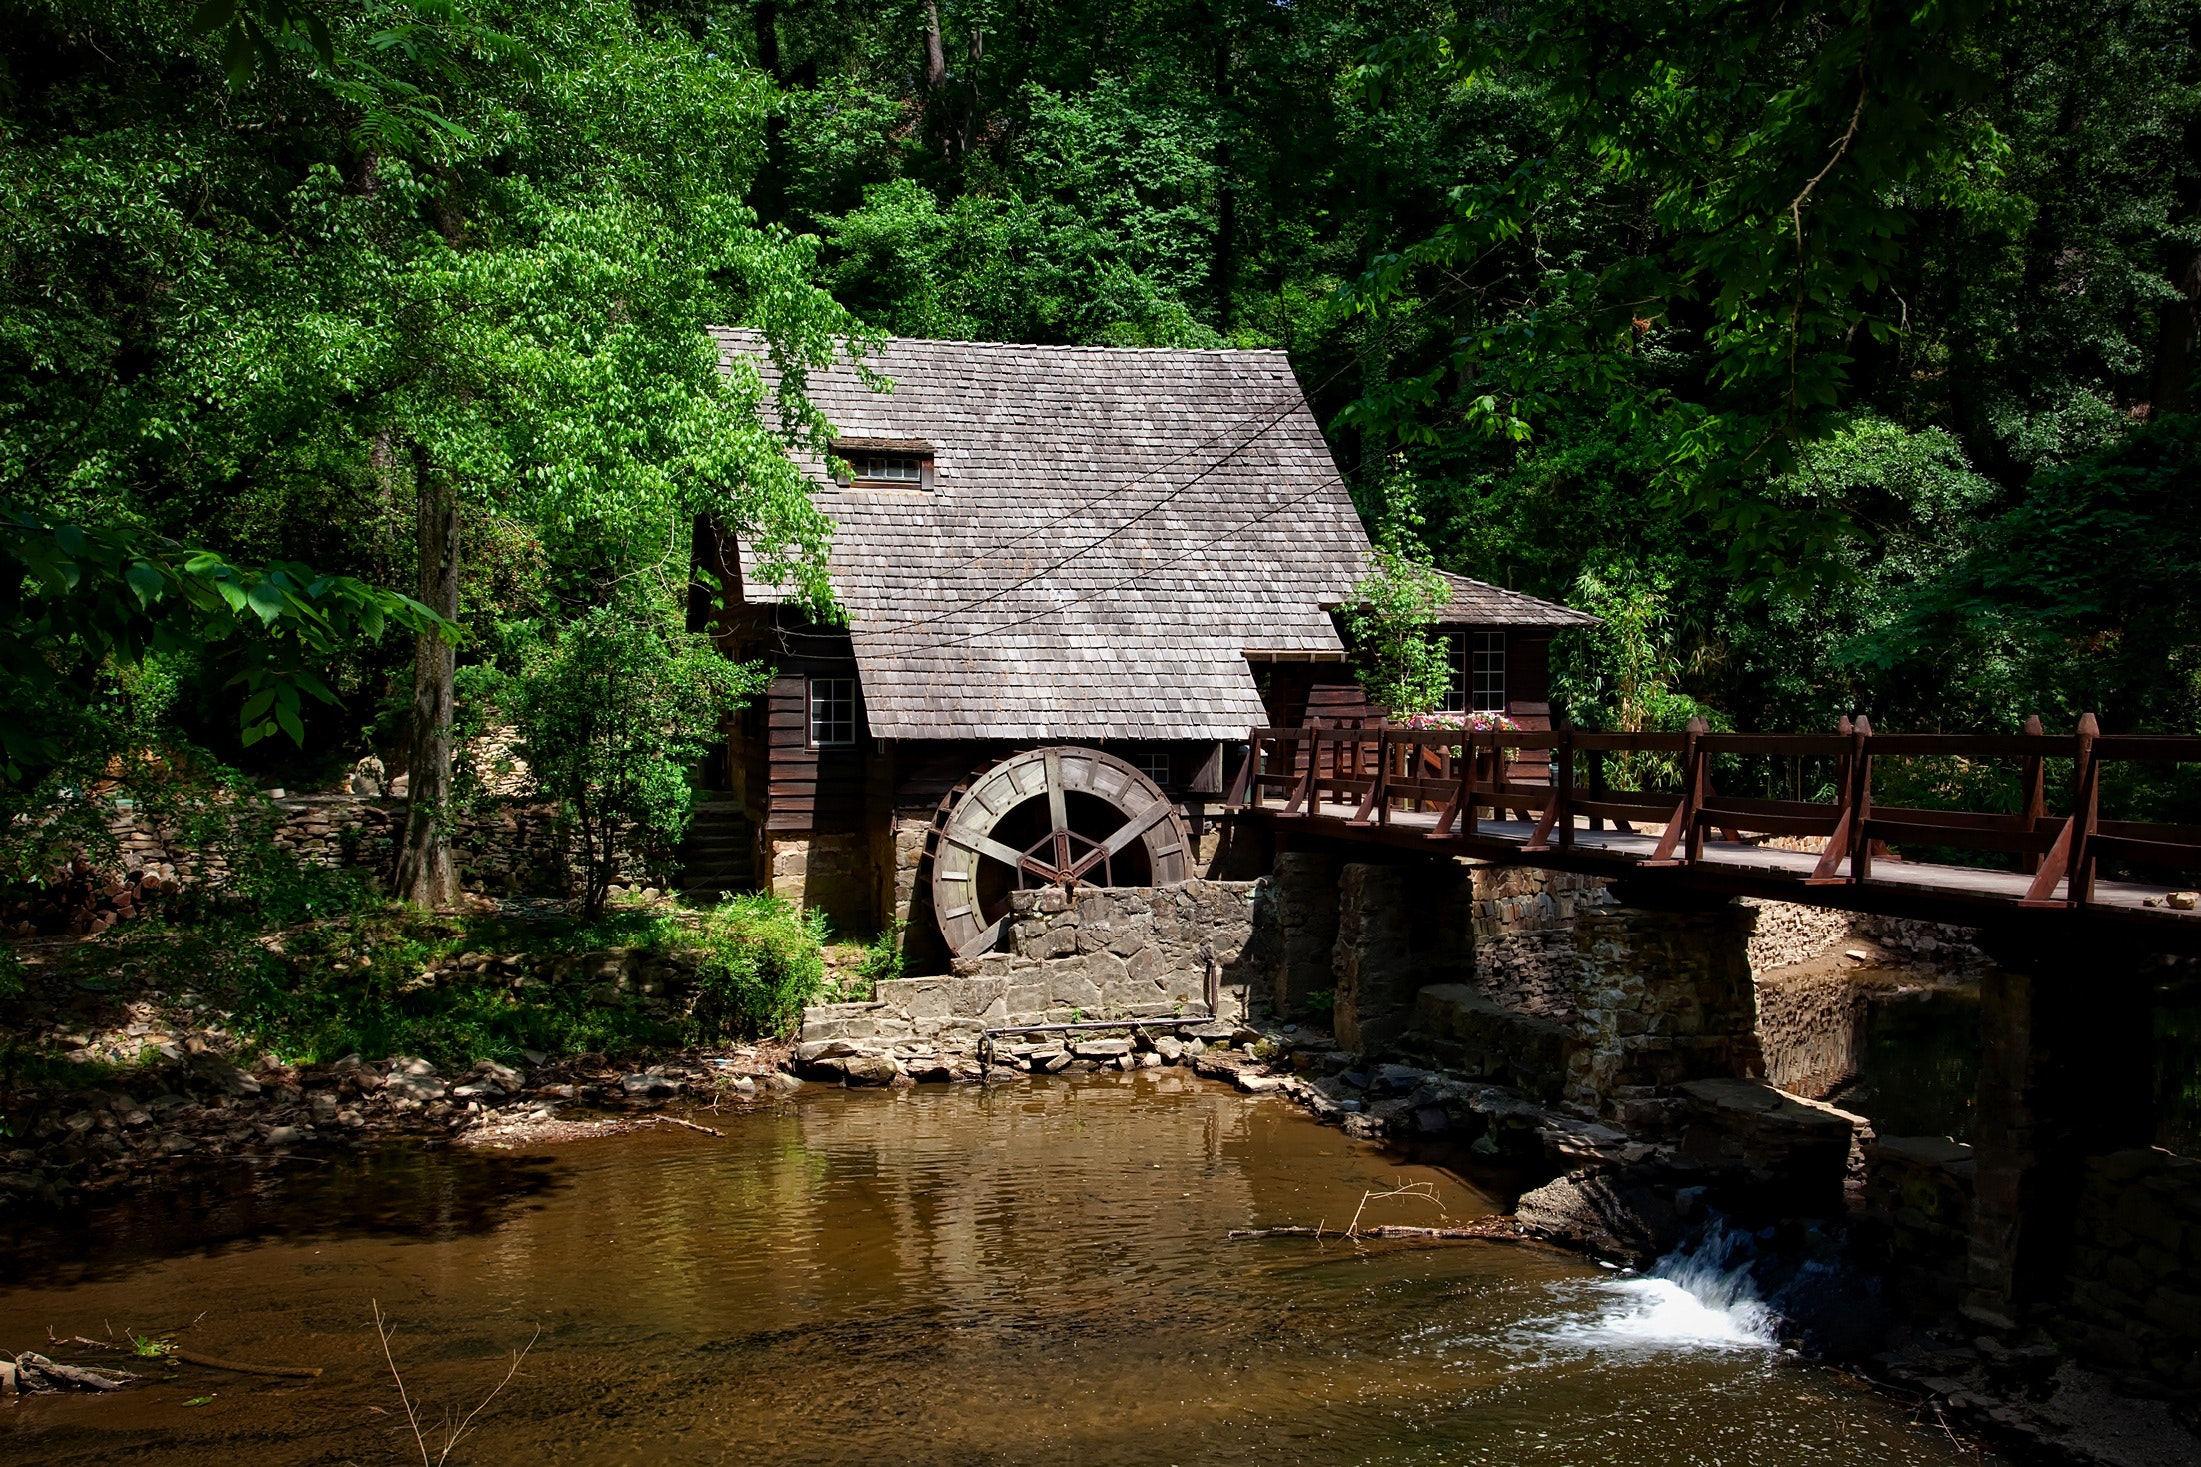 Brown House Near River Trees and Bridge, Structure, Summer, Stream, Travel, HQ Photo